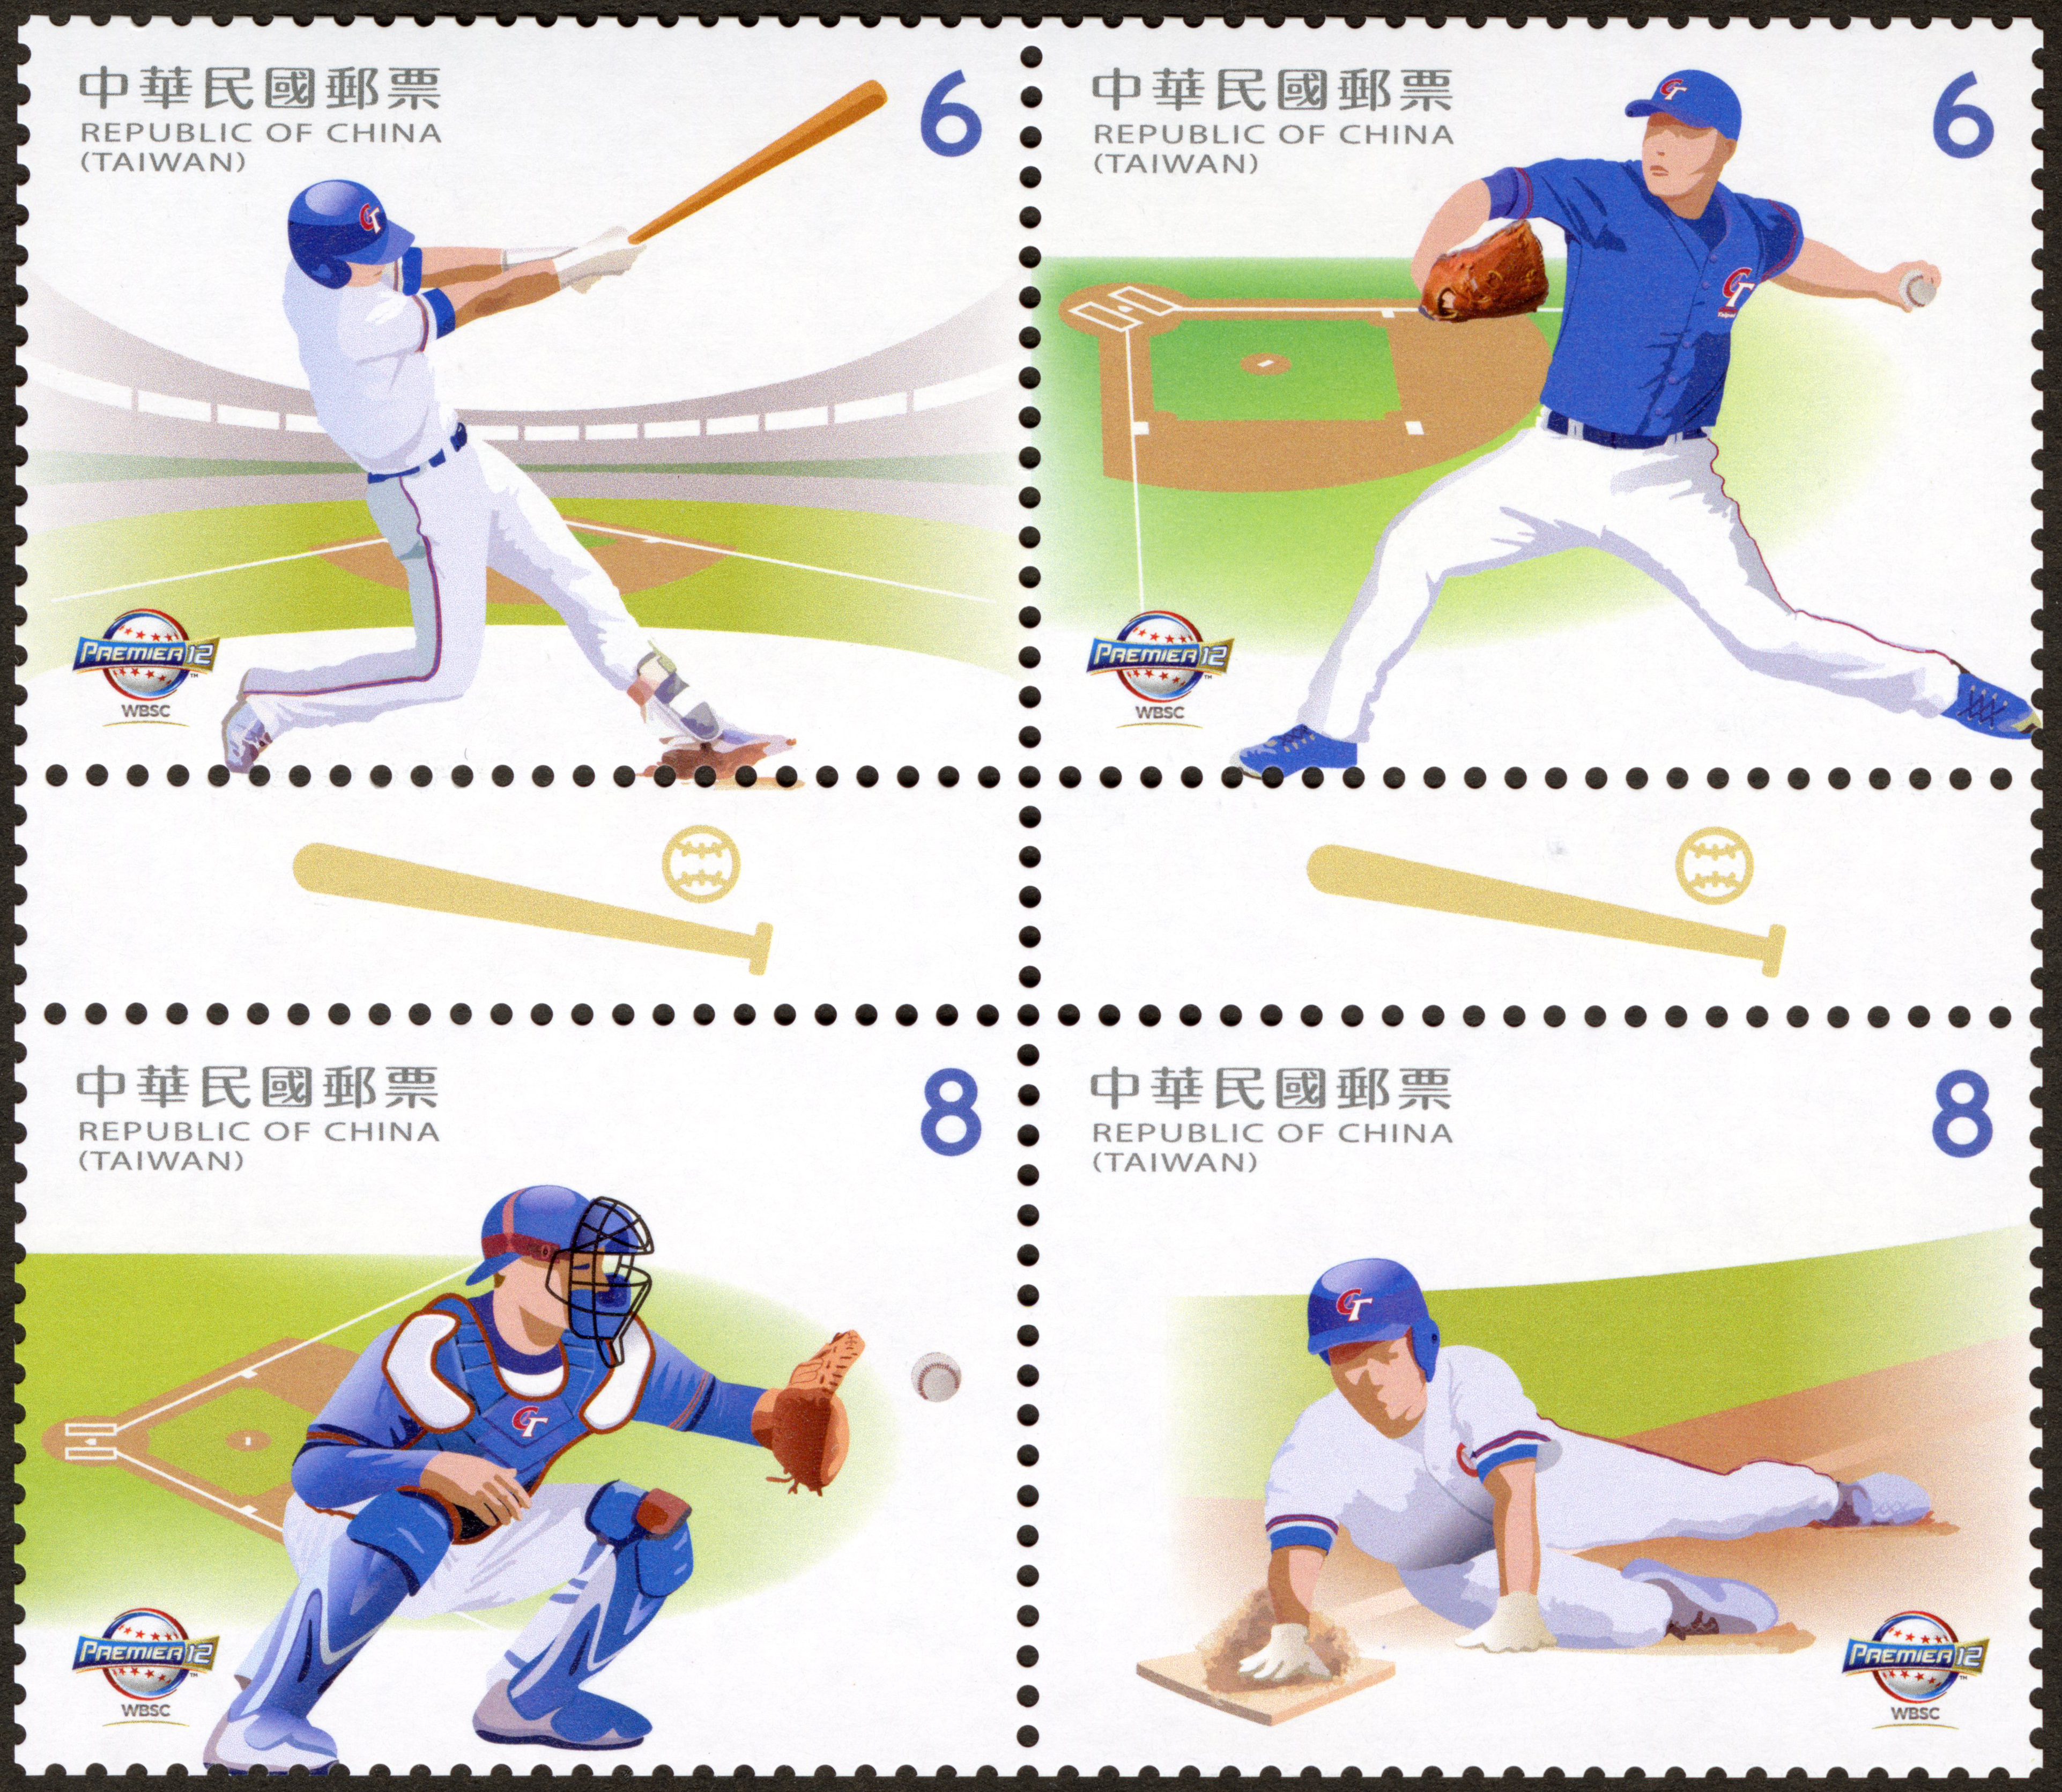 Sports Postage Stamps (Issue of 2019)